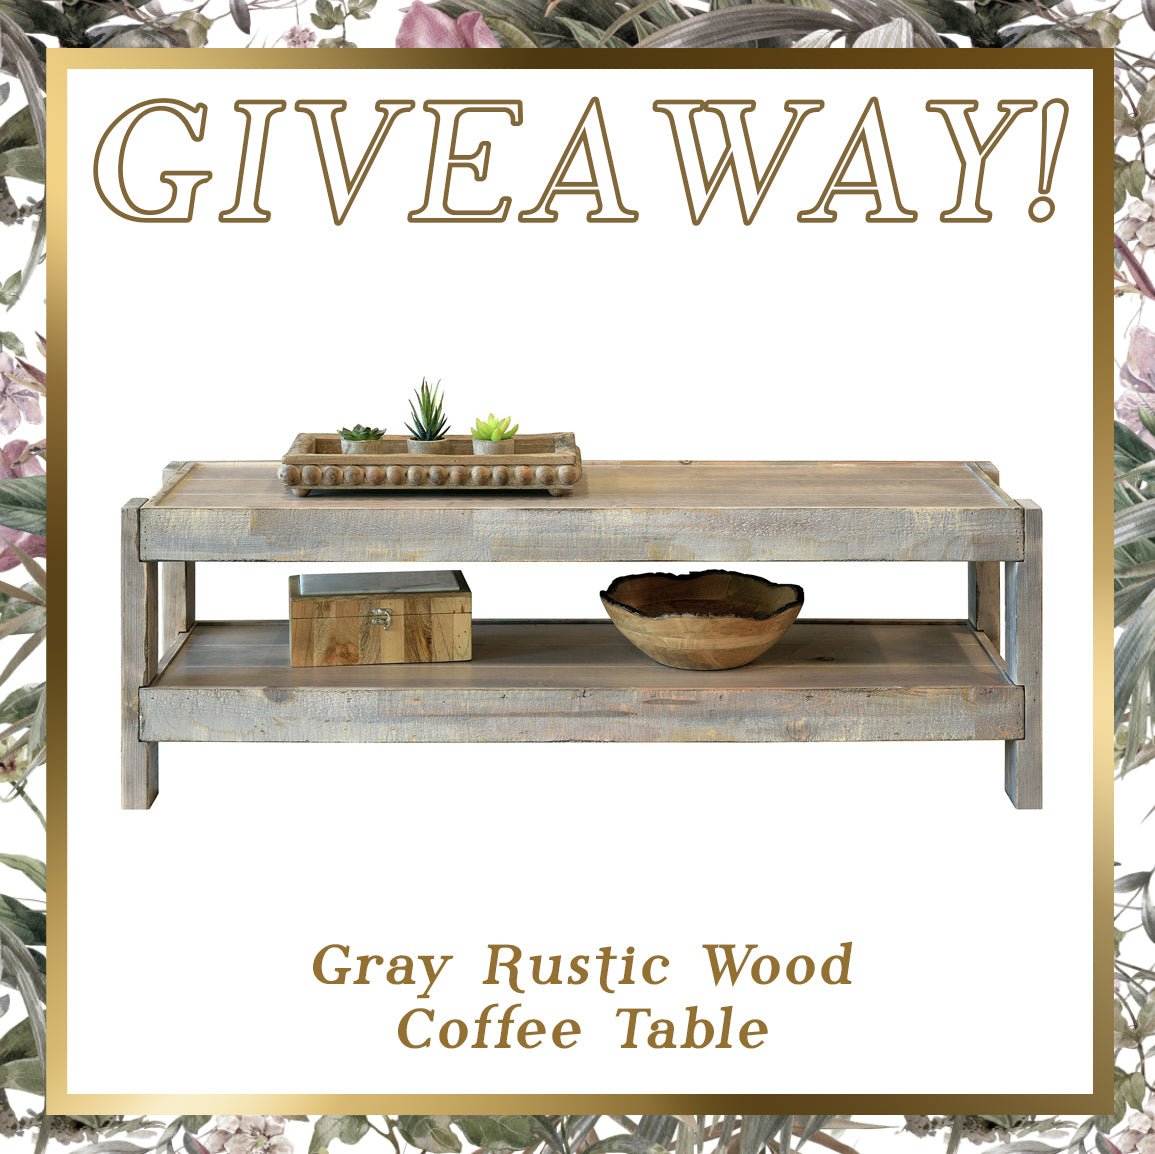 Rustic Gray Wood Coffee Table Giveaway